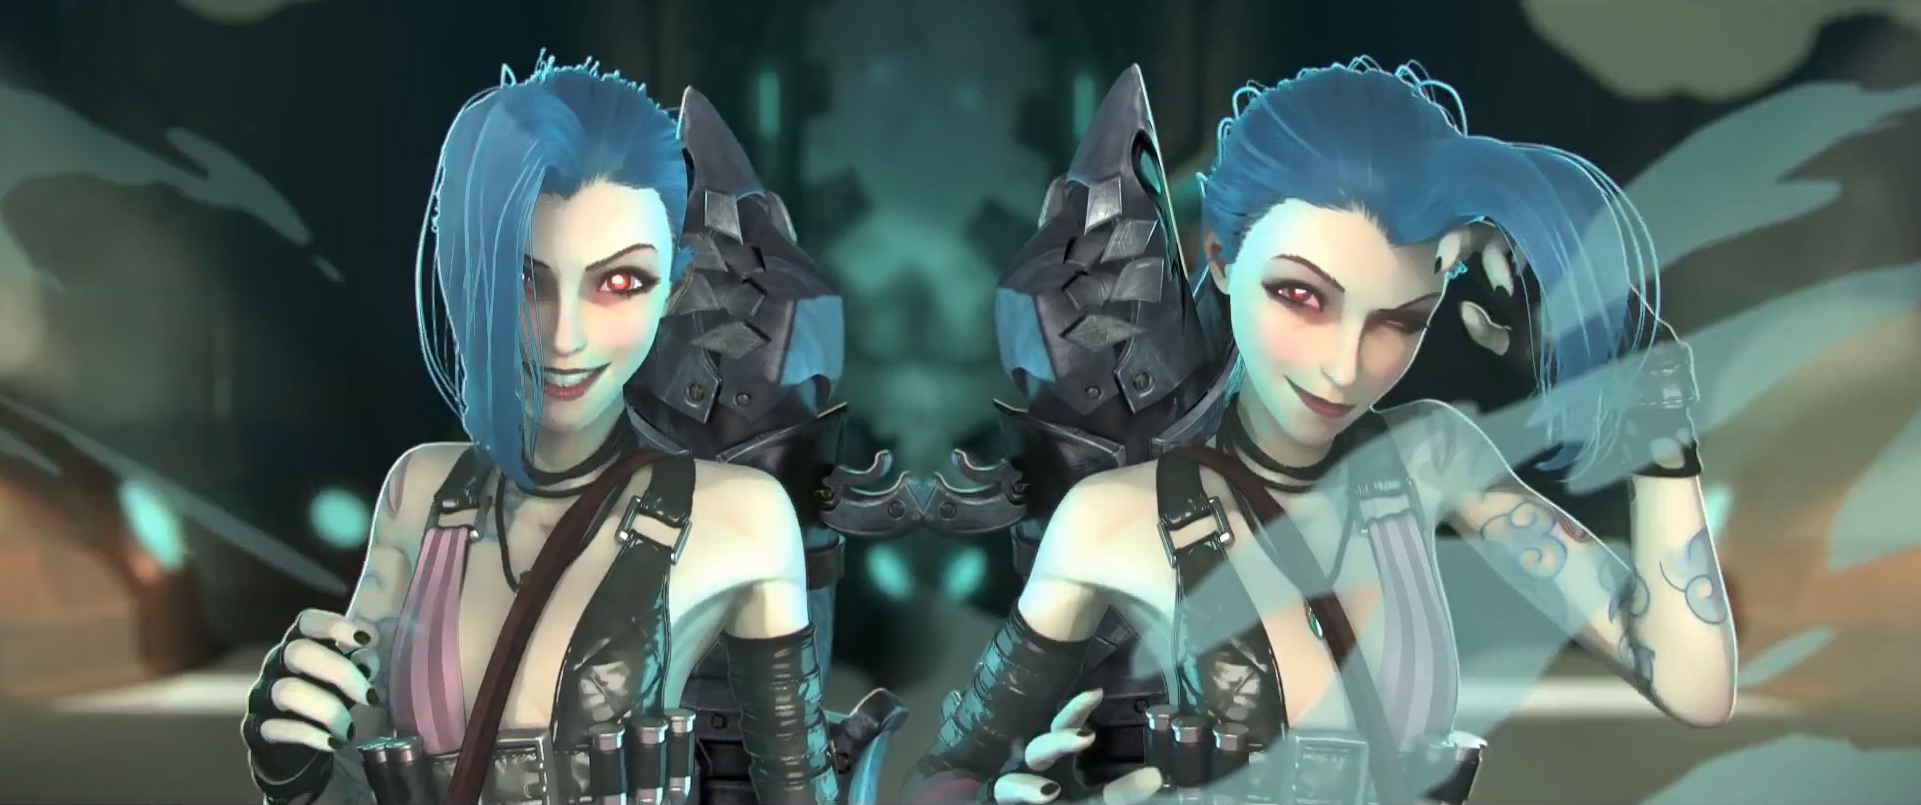 Jinx Lol Cover Banner Wallpaper Background By Astriakrystal On